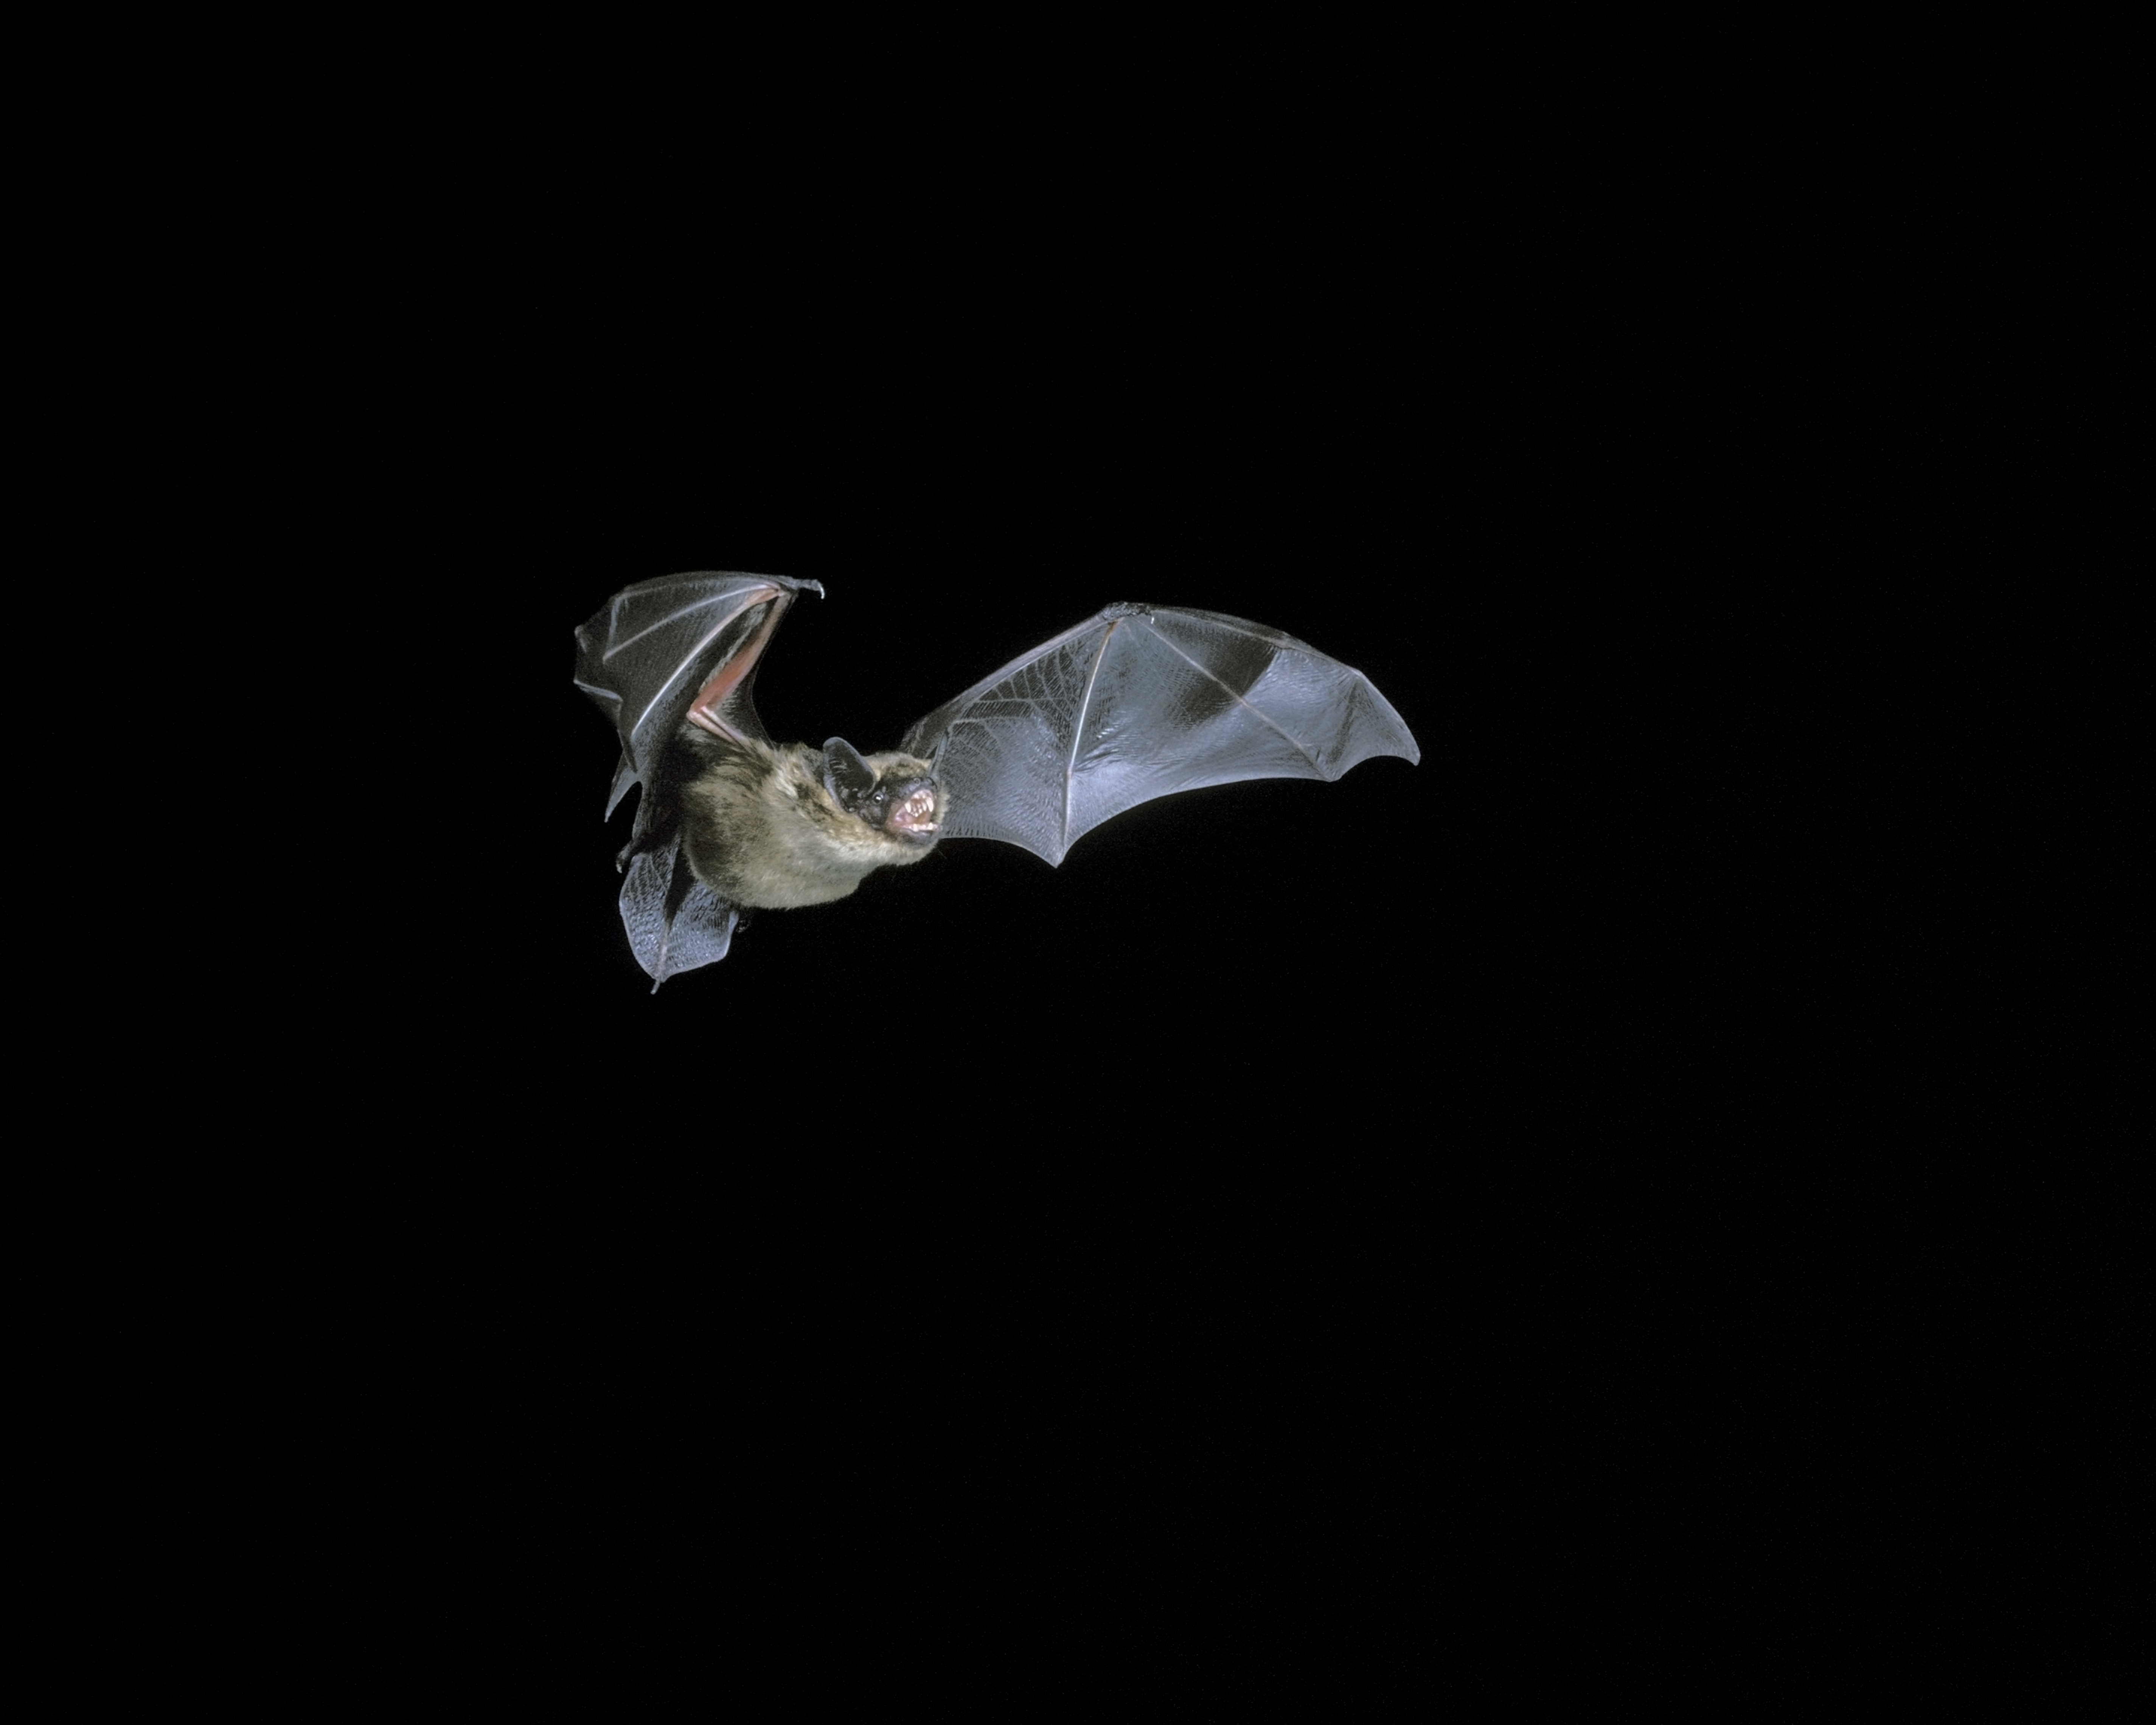 Bat (Image) - The Friends of Ponteland Park